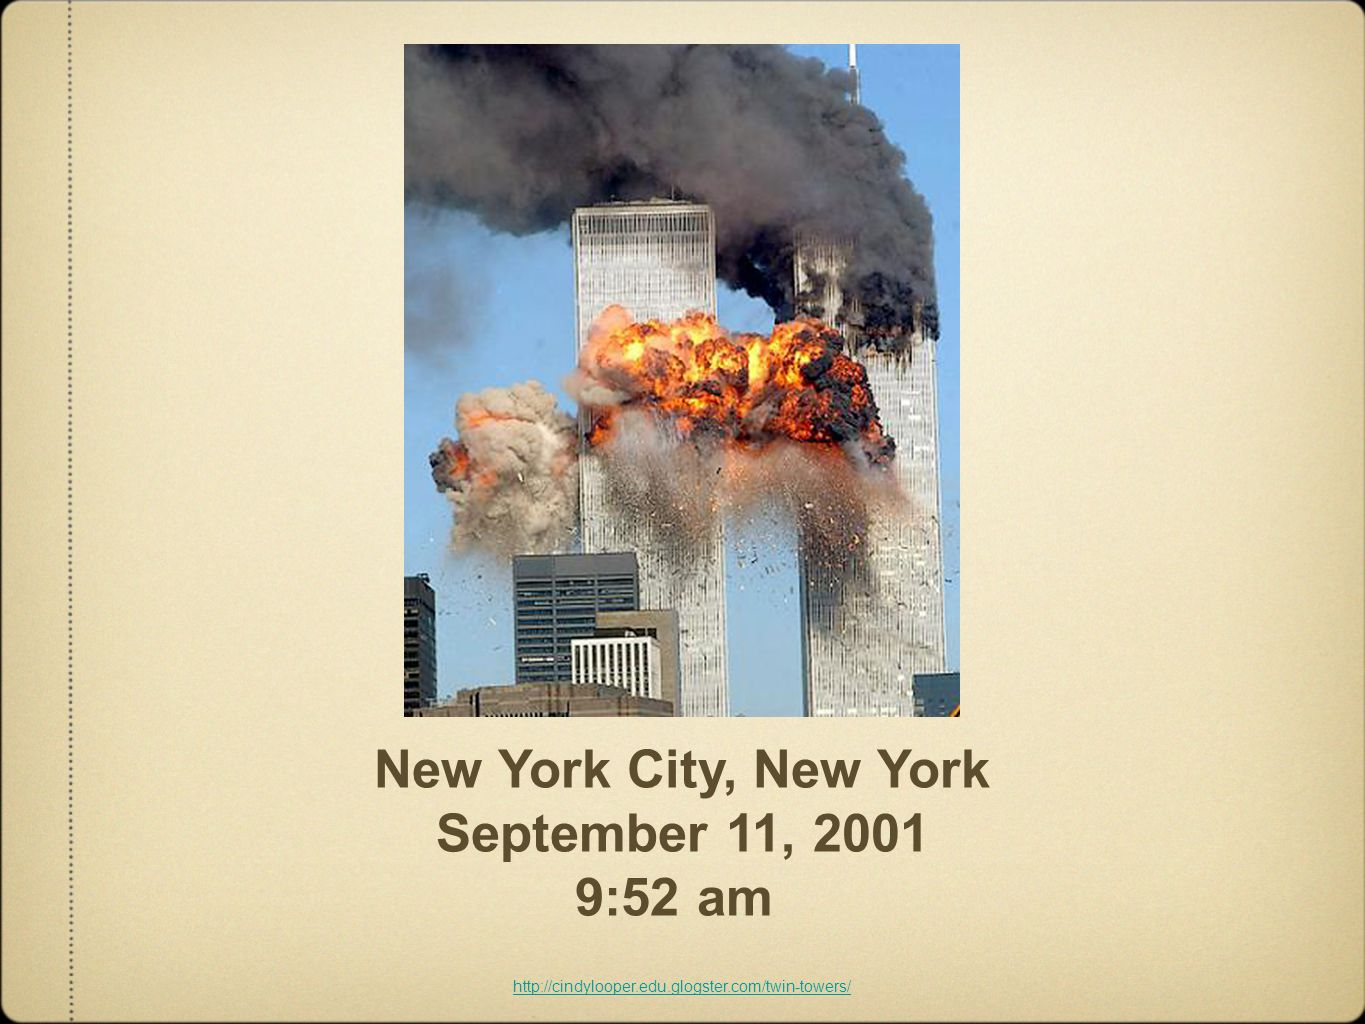 New York City, New York September 11, 2001 9:52 am http://cindylooper.edu.glogster.com/twin-towers/